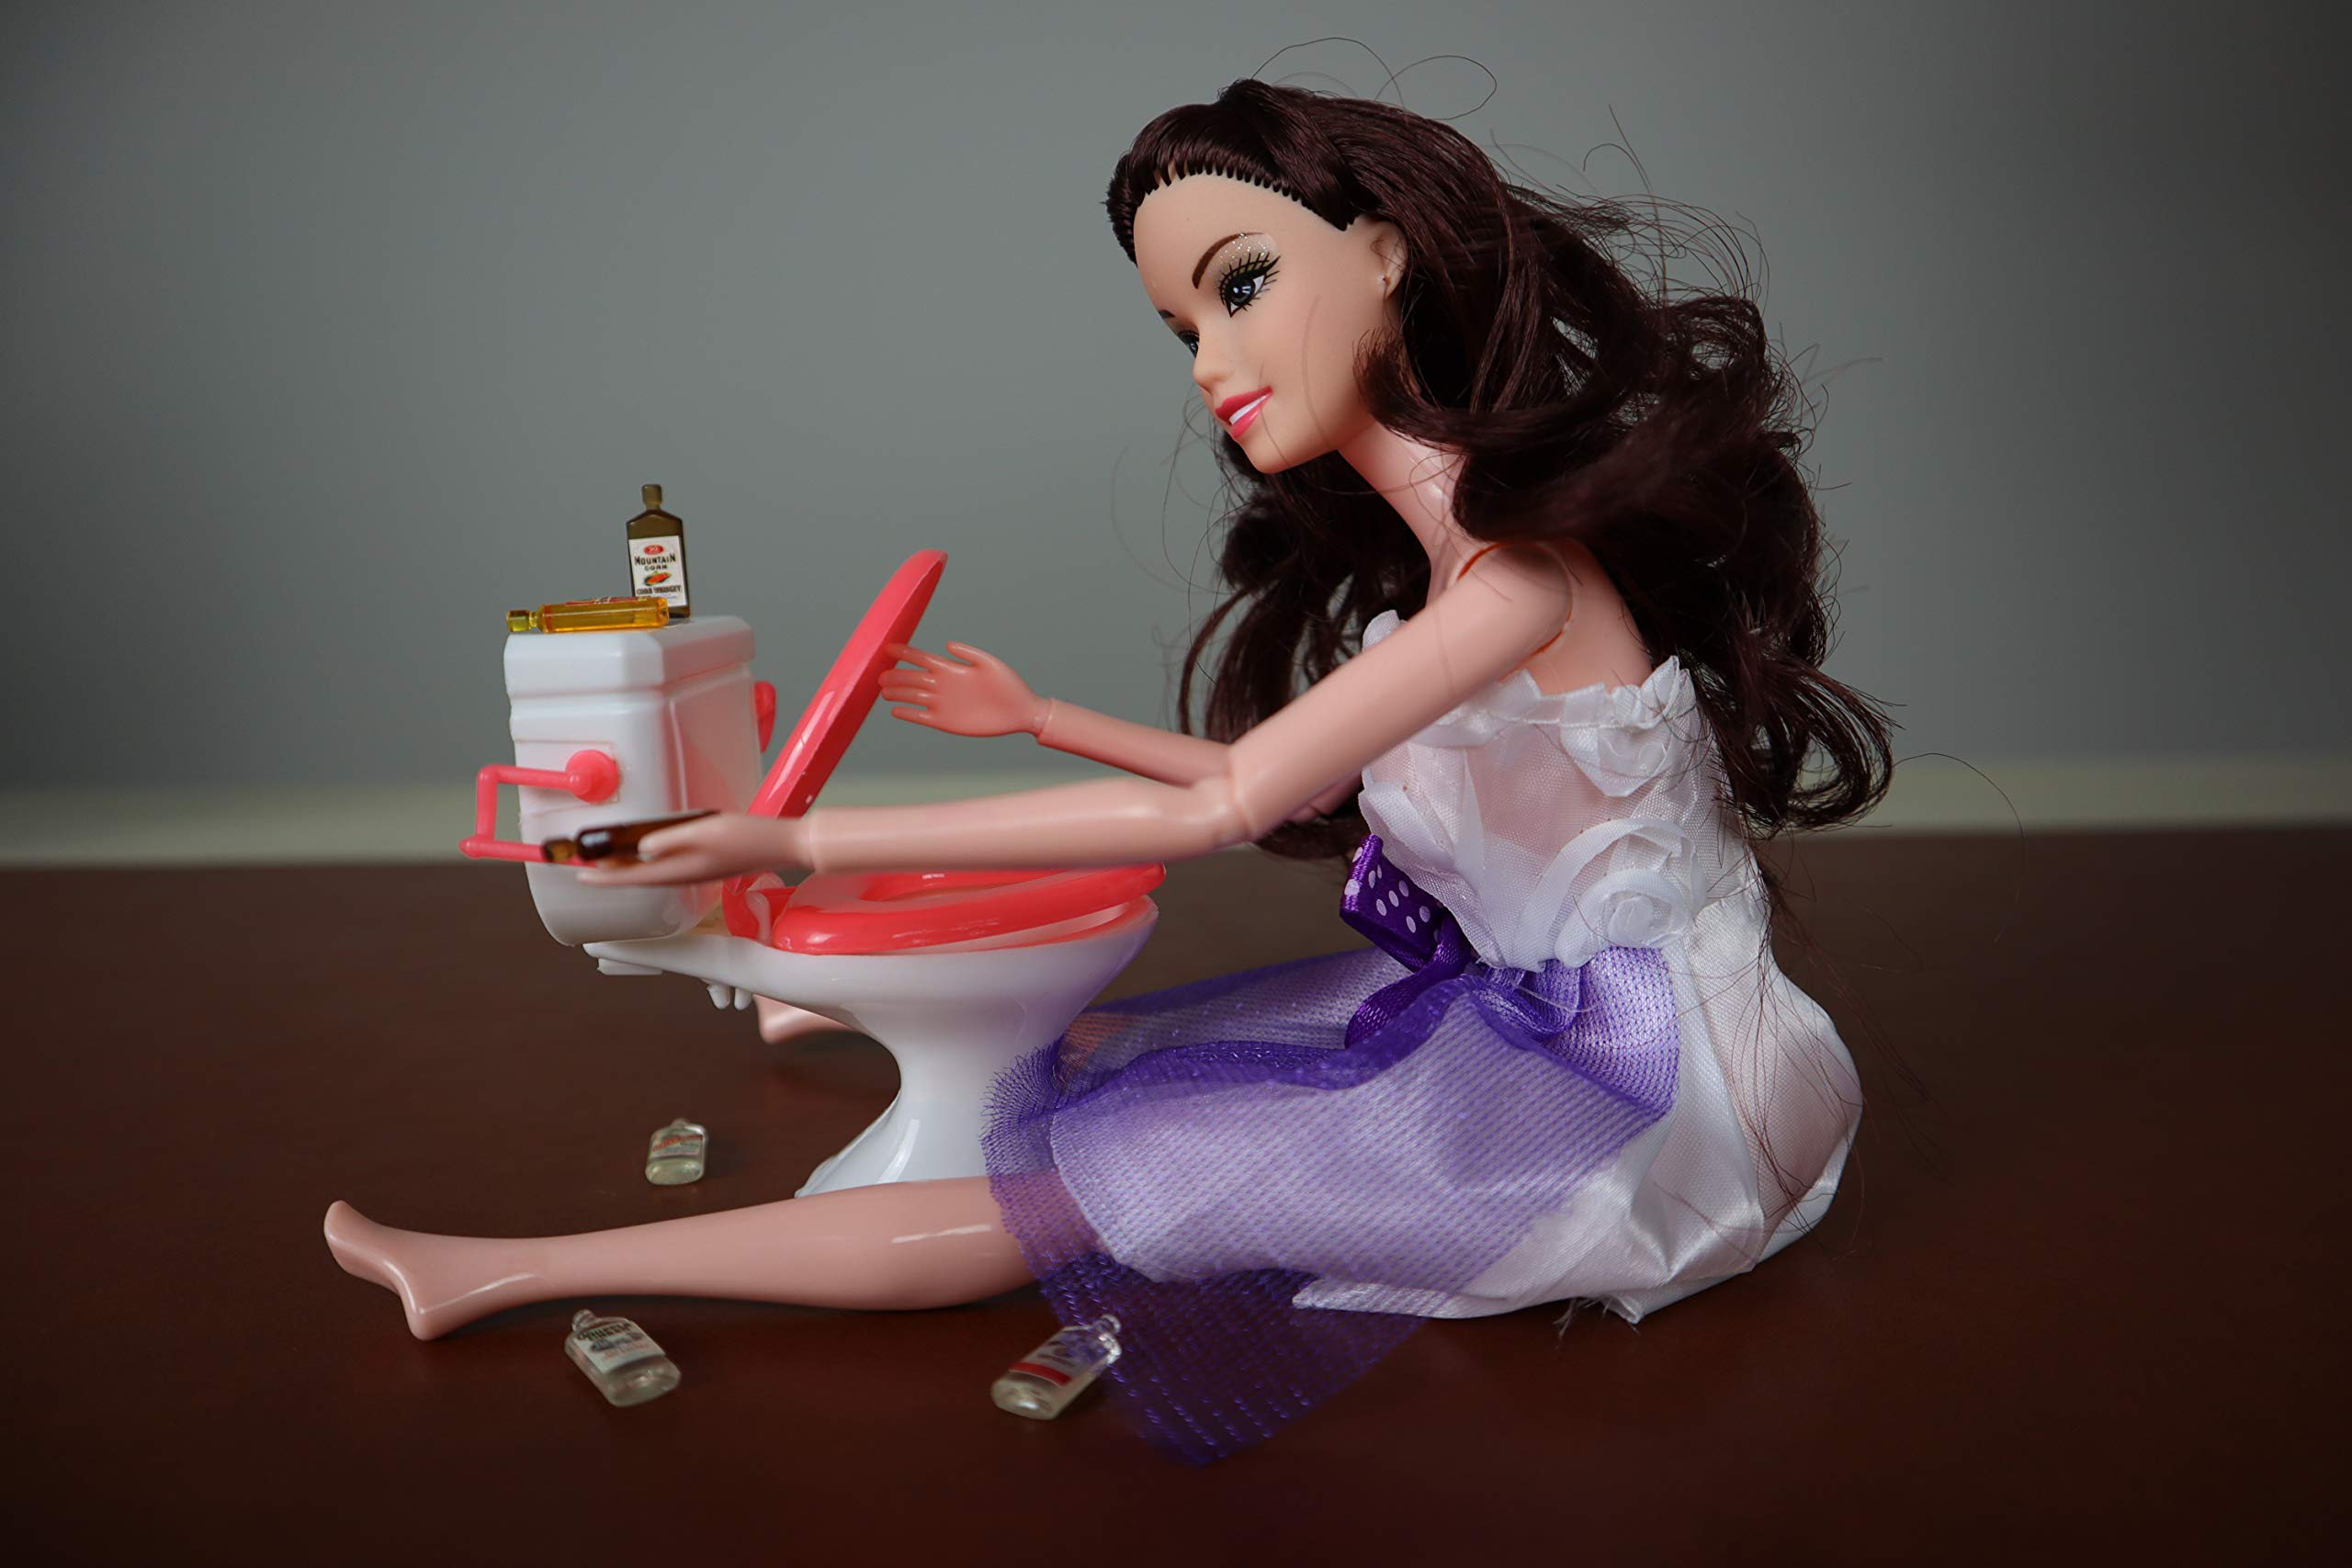 Drunk Doll Cake Topper Funny | Decoration Kit for Celebrating a Bachelorette Party or any Birthday 21 and Up (8 Piece Set)(Not Edible)(Barbie-like Brunette)